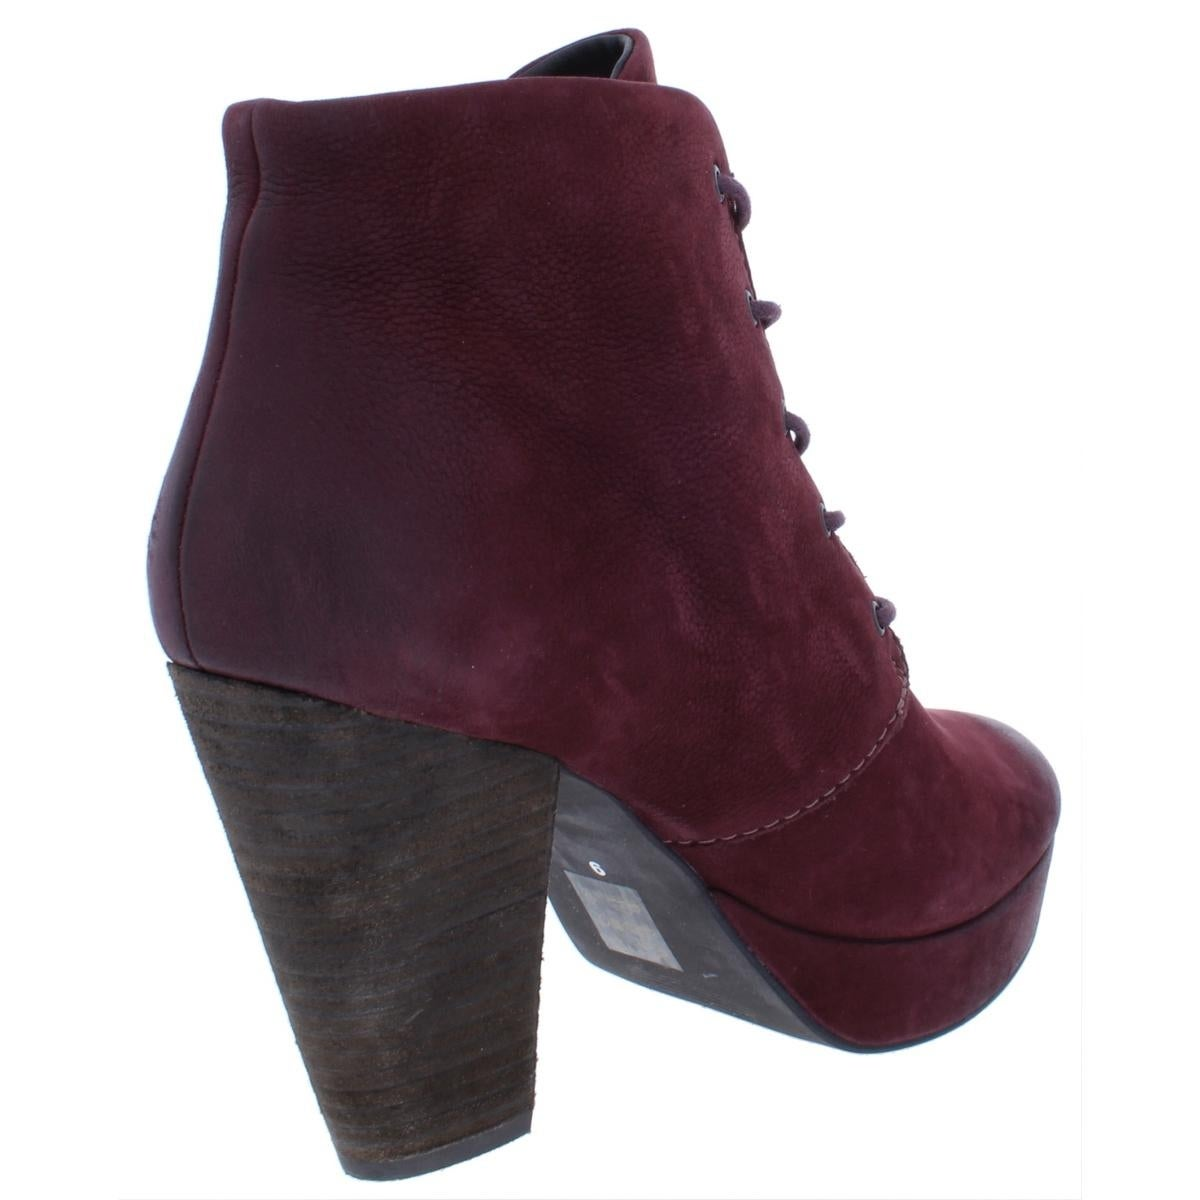 526dd06bf66 Shop Steve Madden Womens Raspy Ankle Boots Leather Lace Up - 9 Medium (B